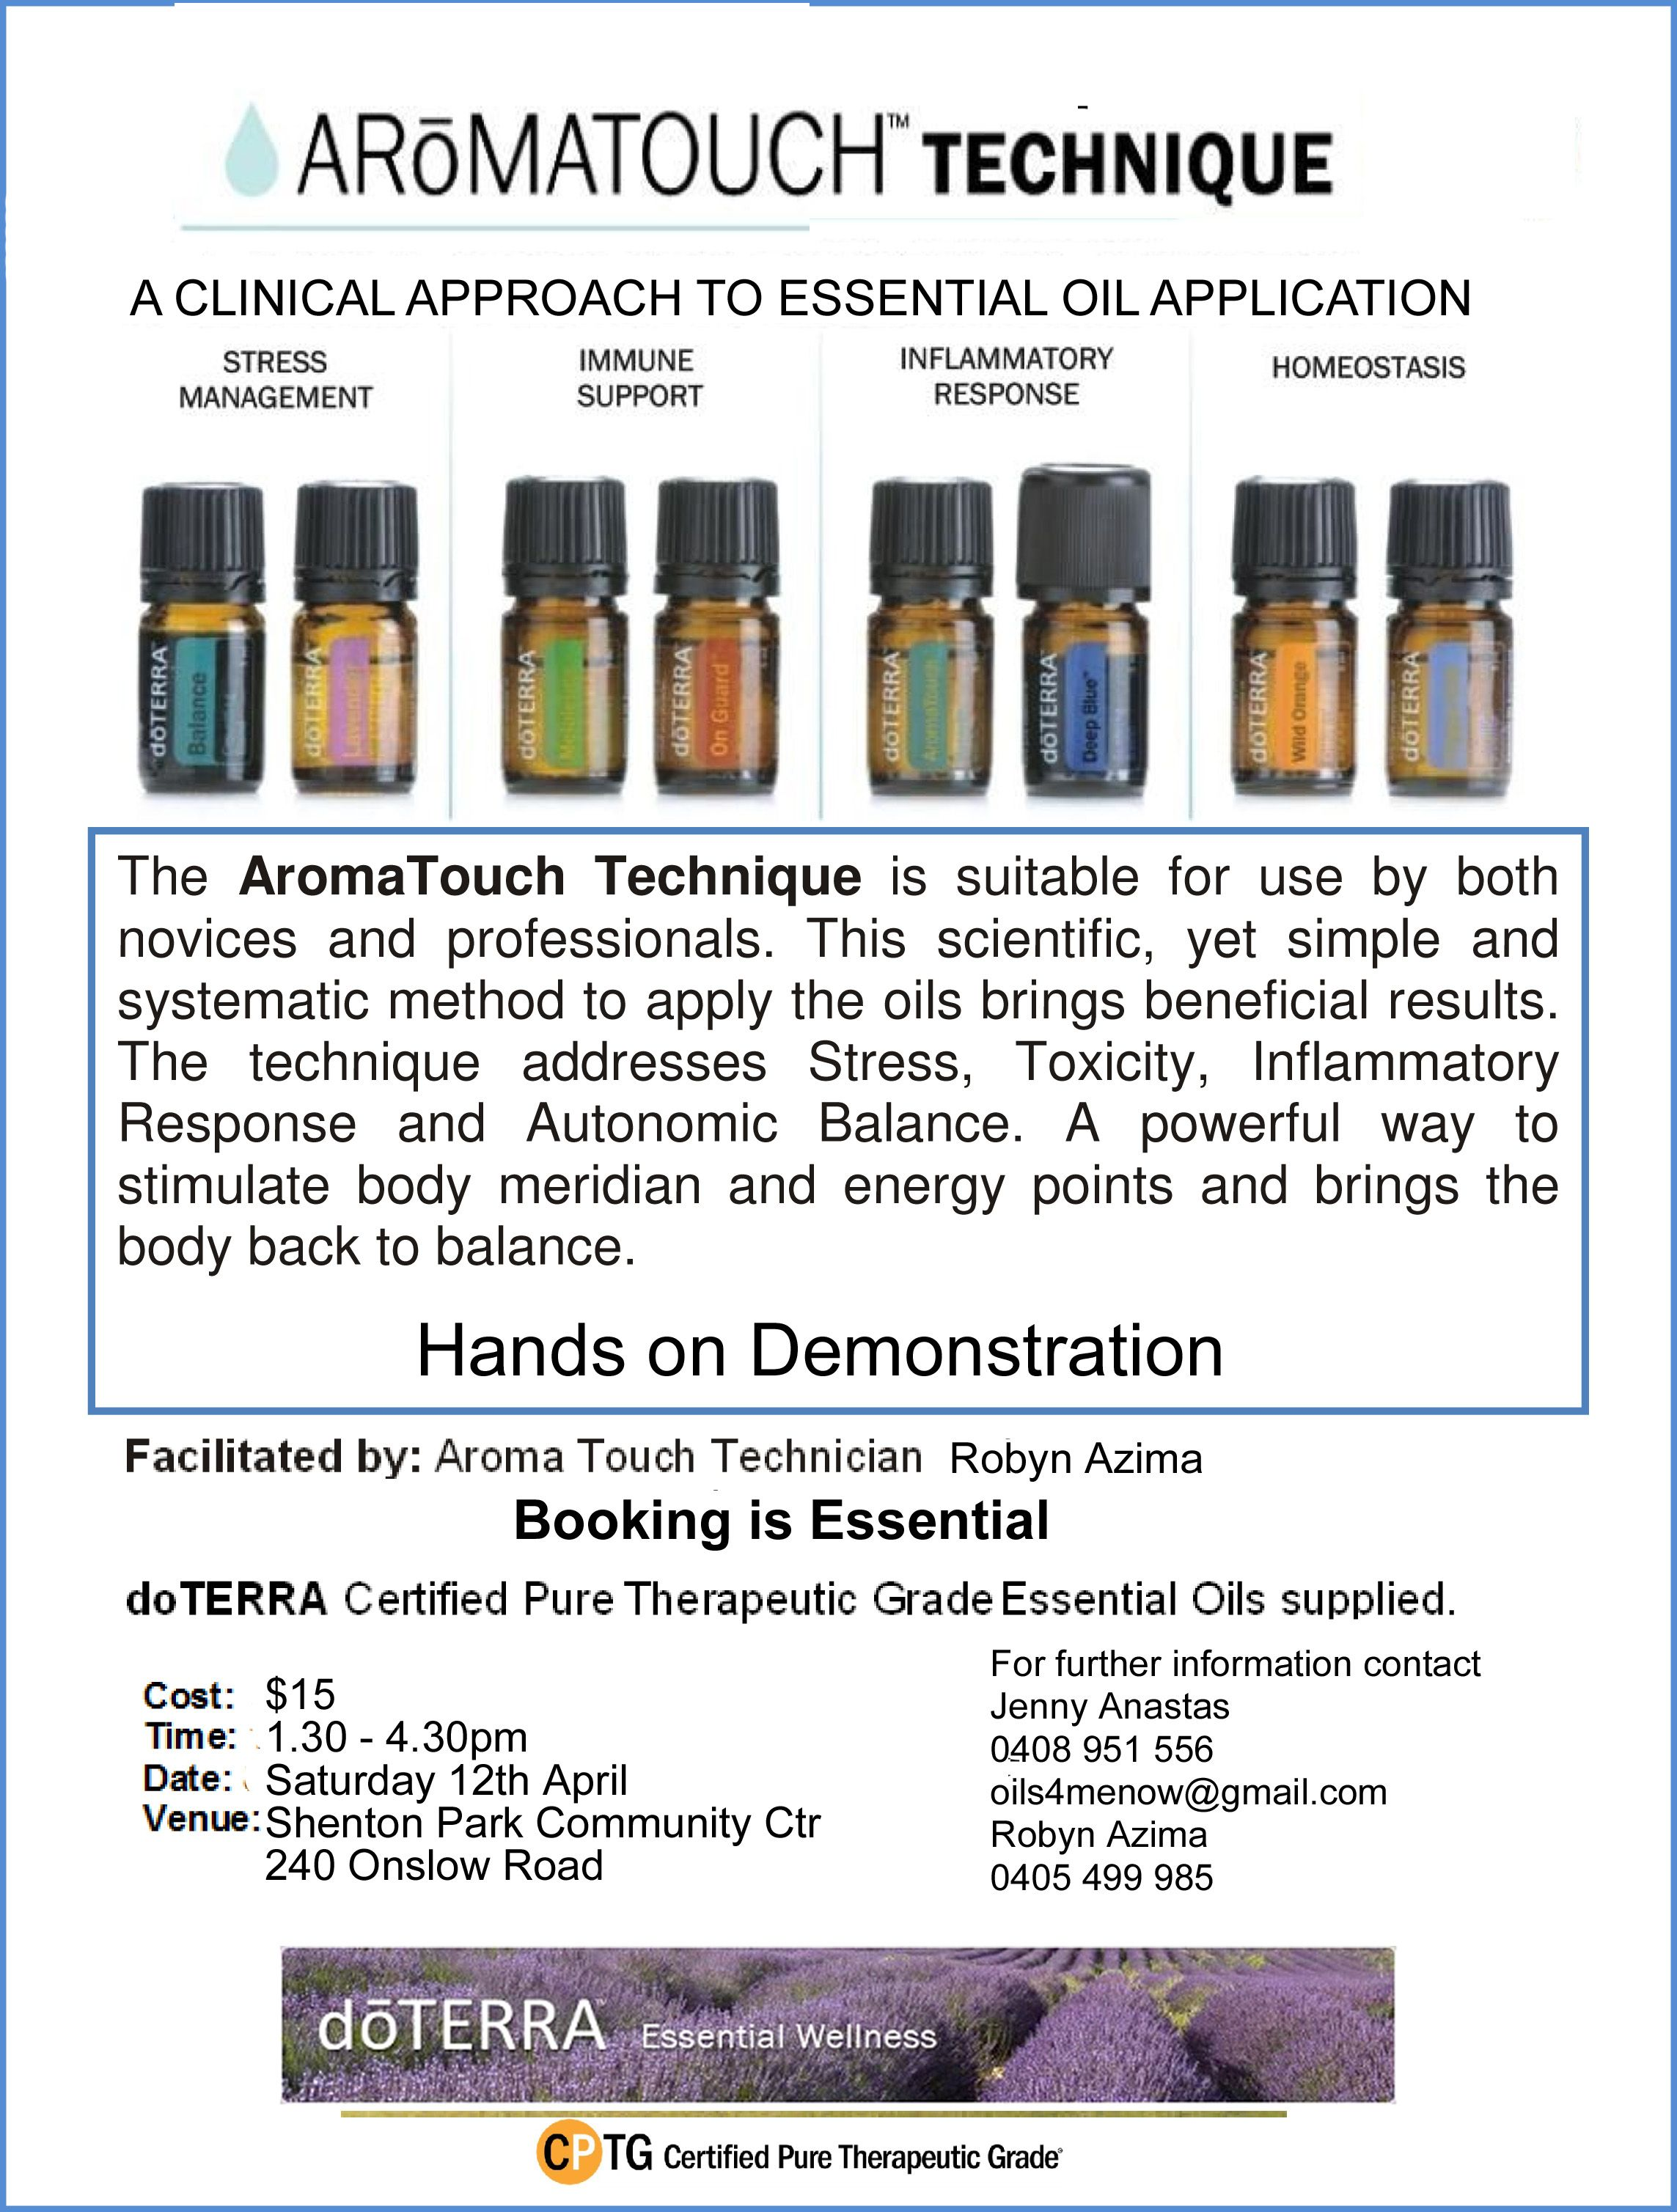 Image Result For Doterra Aromatouch Flyer Oils Aromatouch